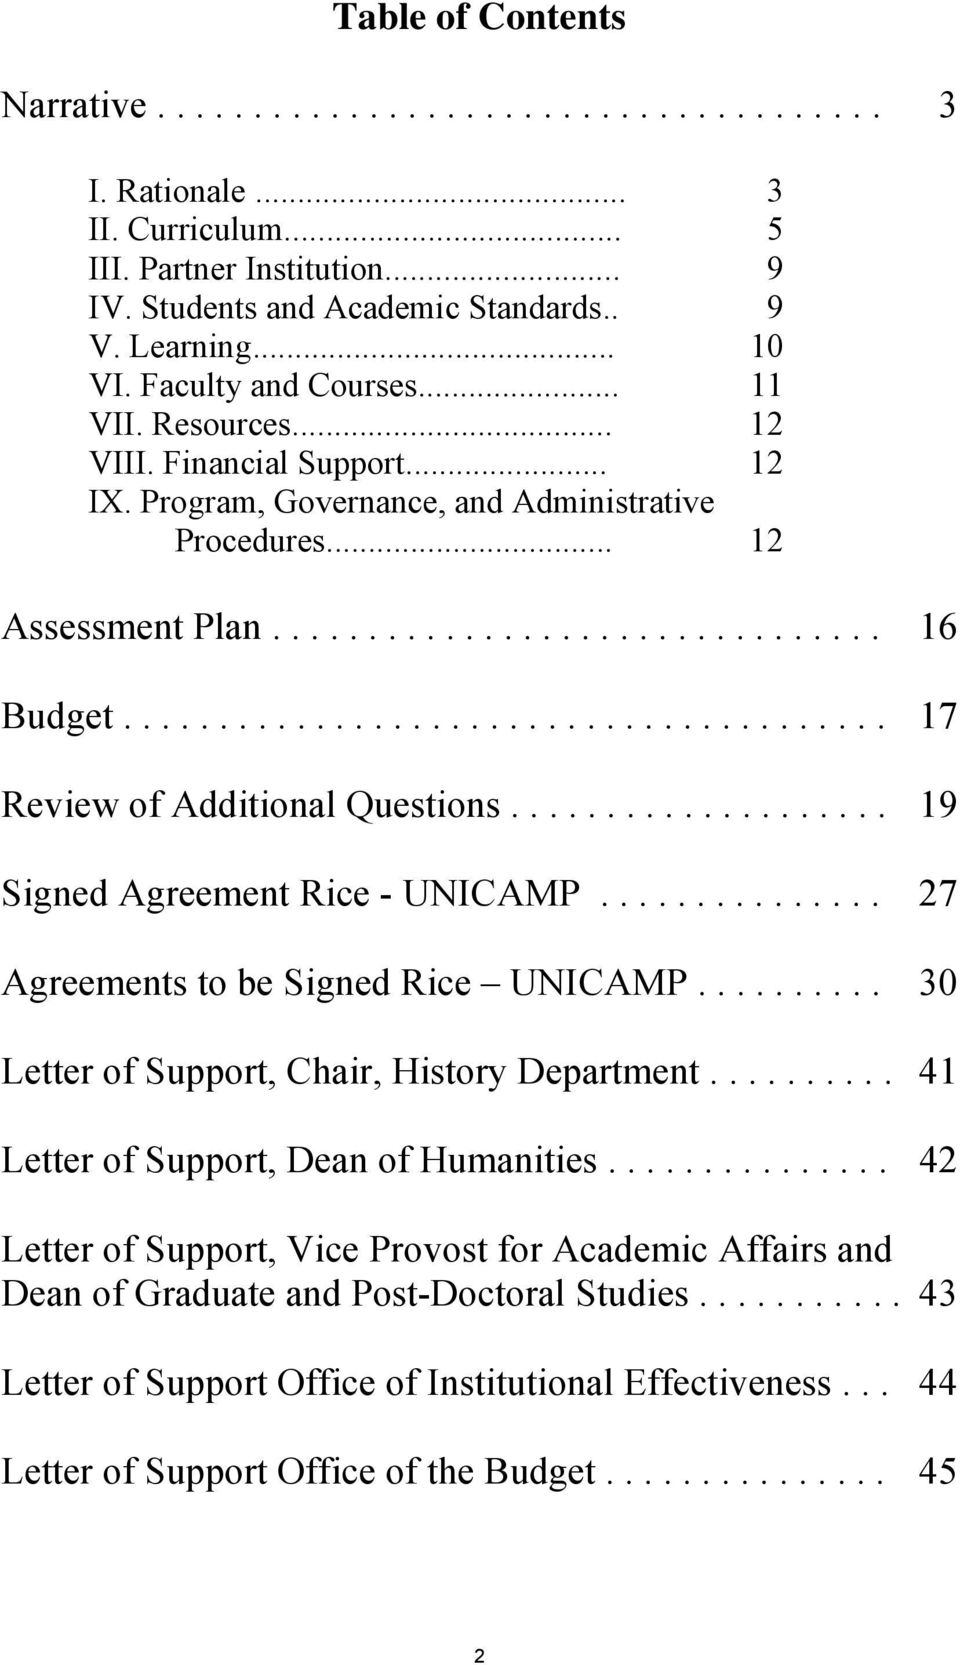 ....................................... 17 Review of Additional Questions.................... 19 Signed Agreement Rice - UNICAMP............... 27 Agreements to be Signed Rice UNICAMP.